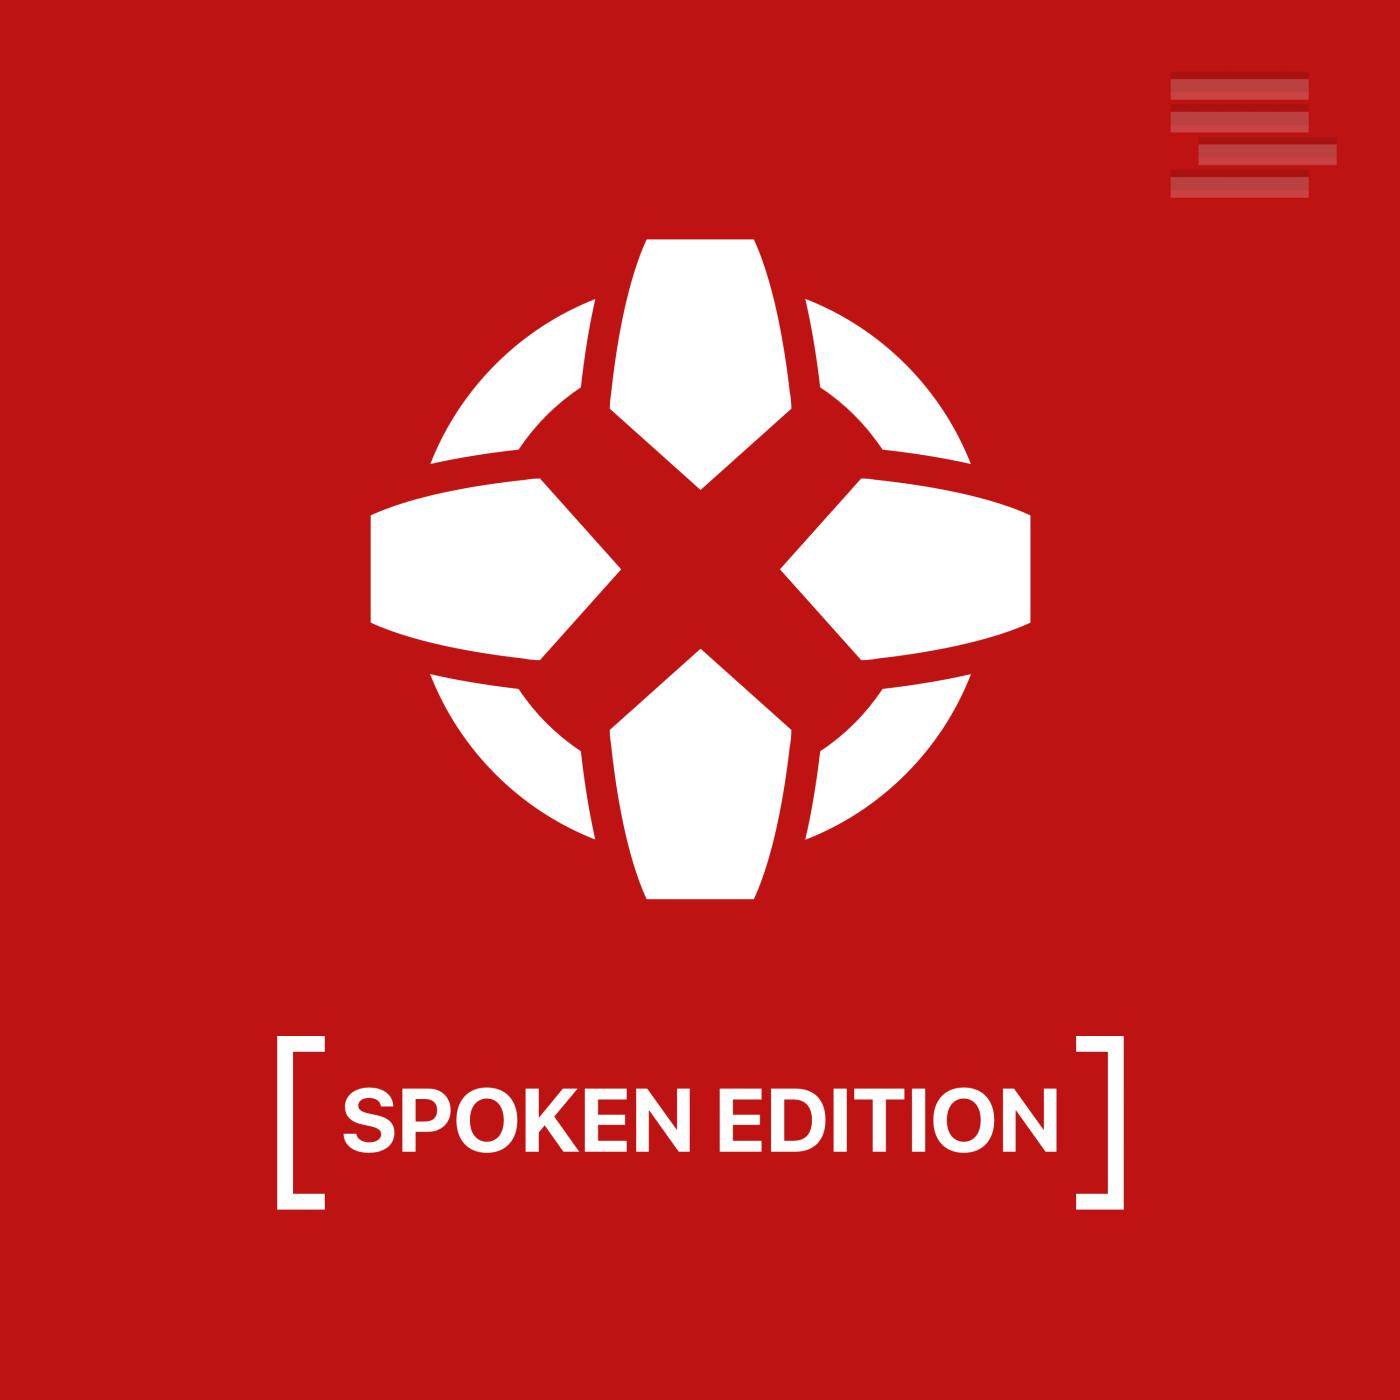 Warcraft 3 Reforged Review Ign Game Reviews Spoken Edition